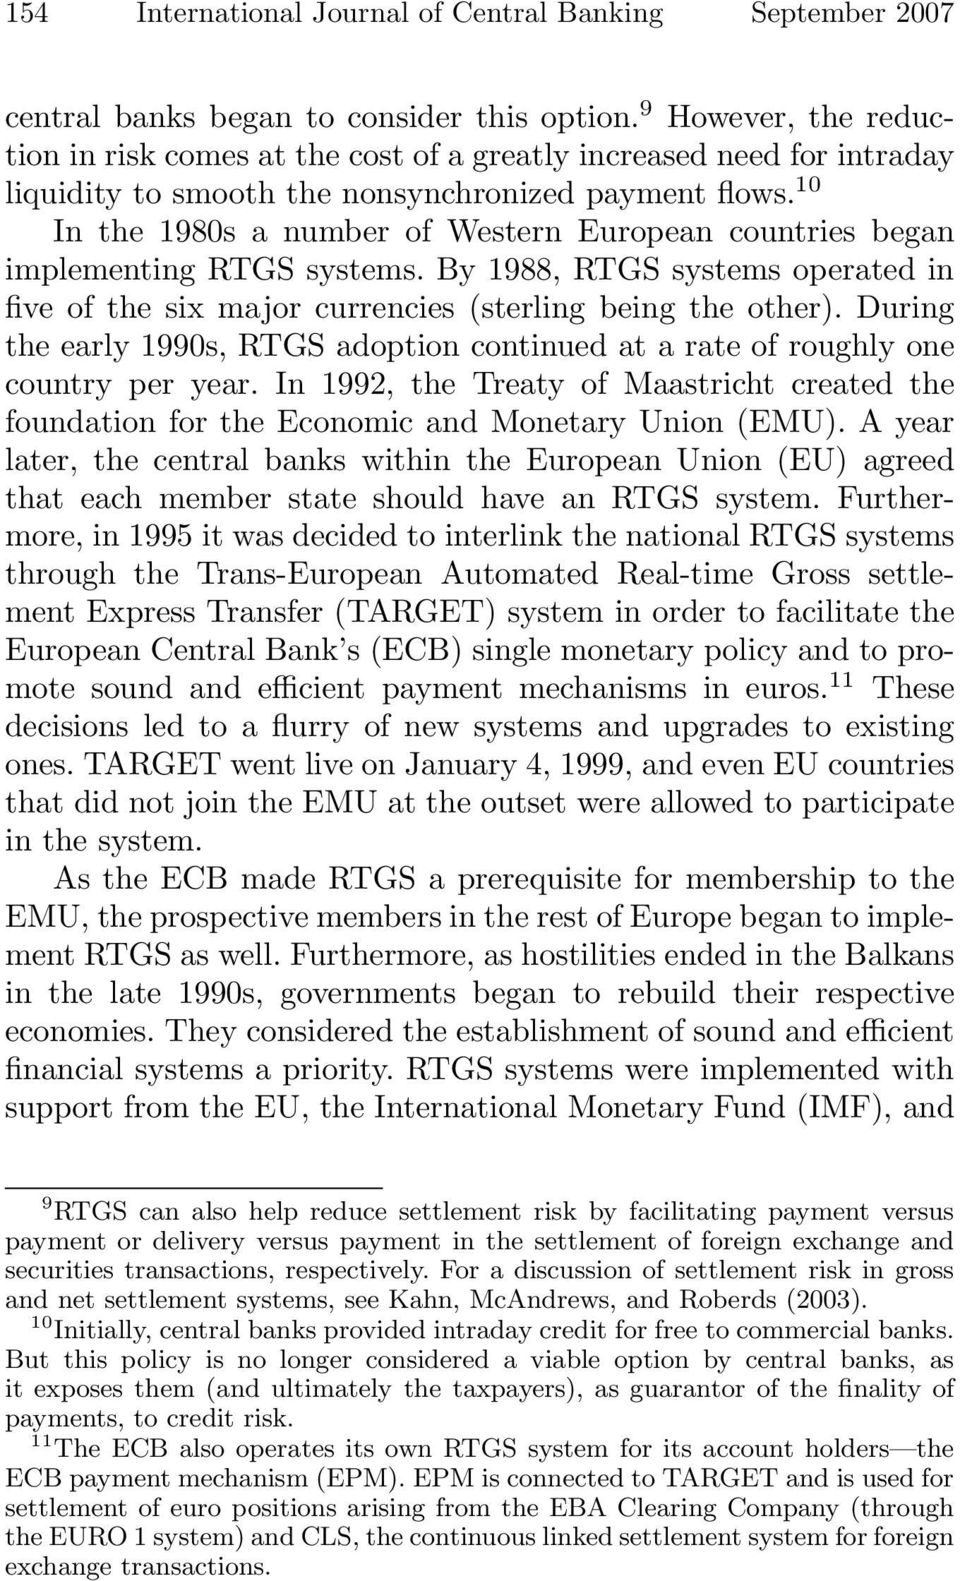 10 In the 1980s a number of Western European countries began implementing RTGS systems. By 1988, RTGS systems operated in five of the six major currencies (sterling being the other).